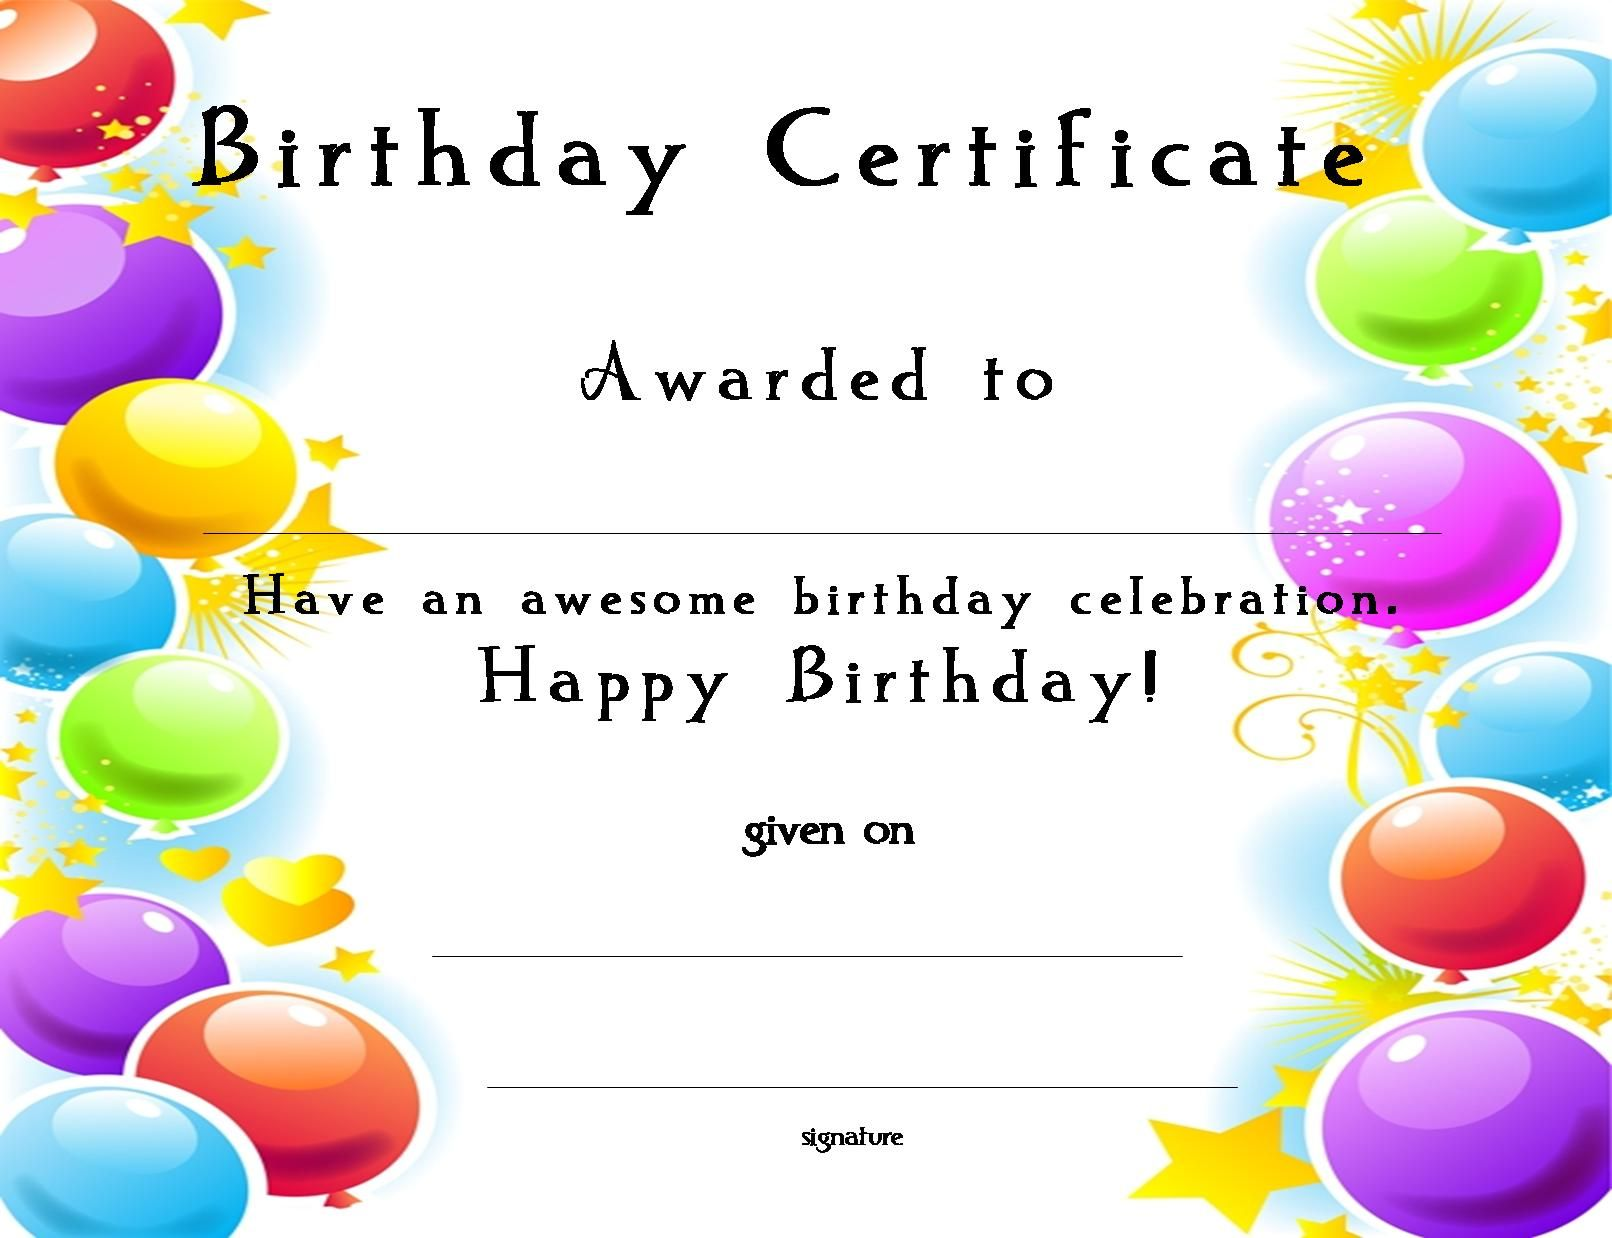 Certificatetemplate happy birthday certificate for your certificatetemplate happy birthday certificate for your kids ministry xflitez Gallery